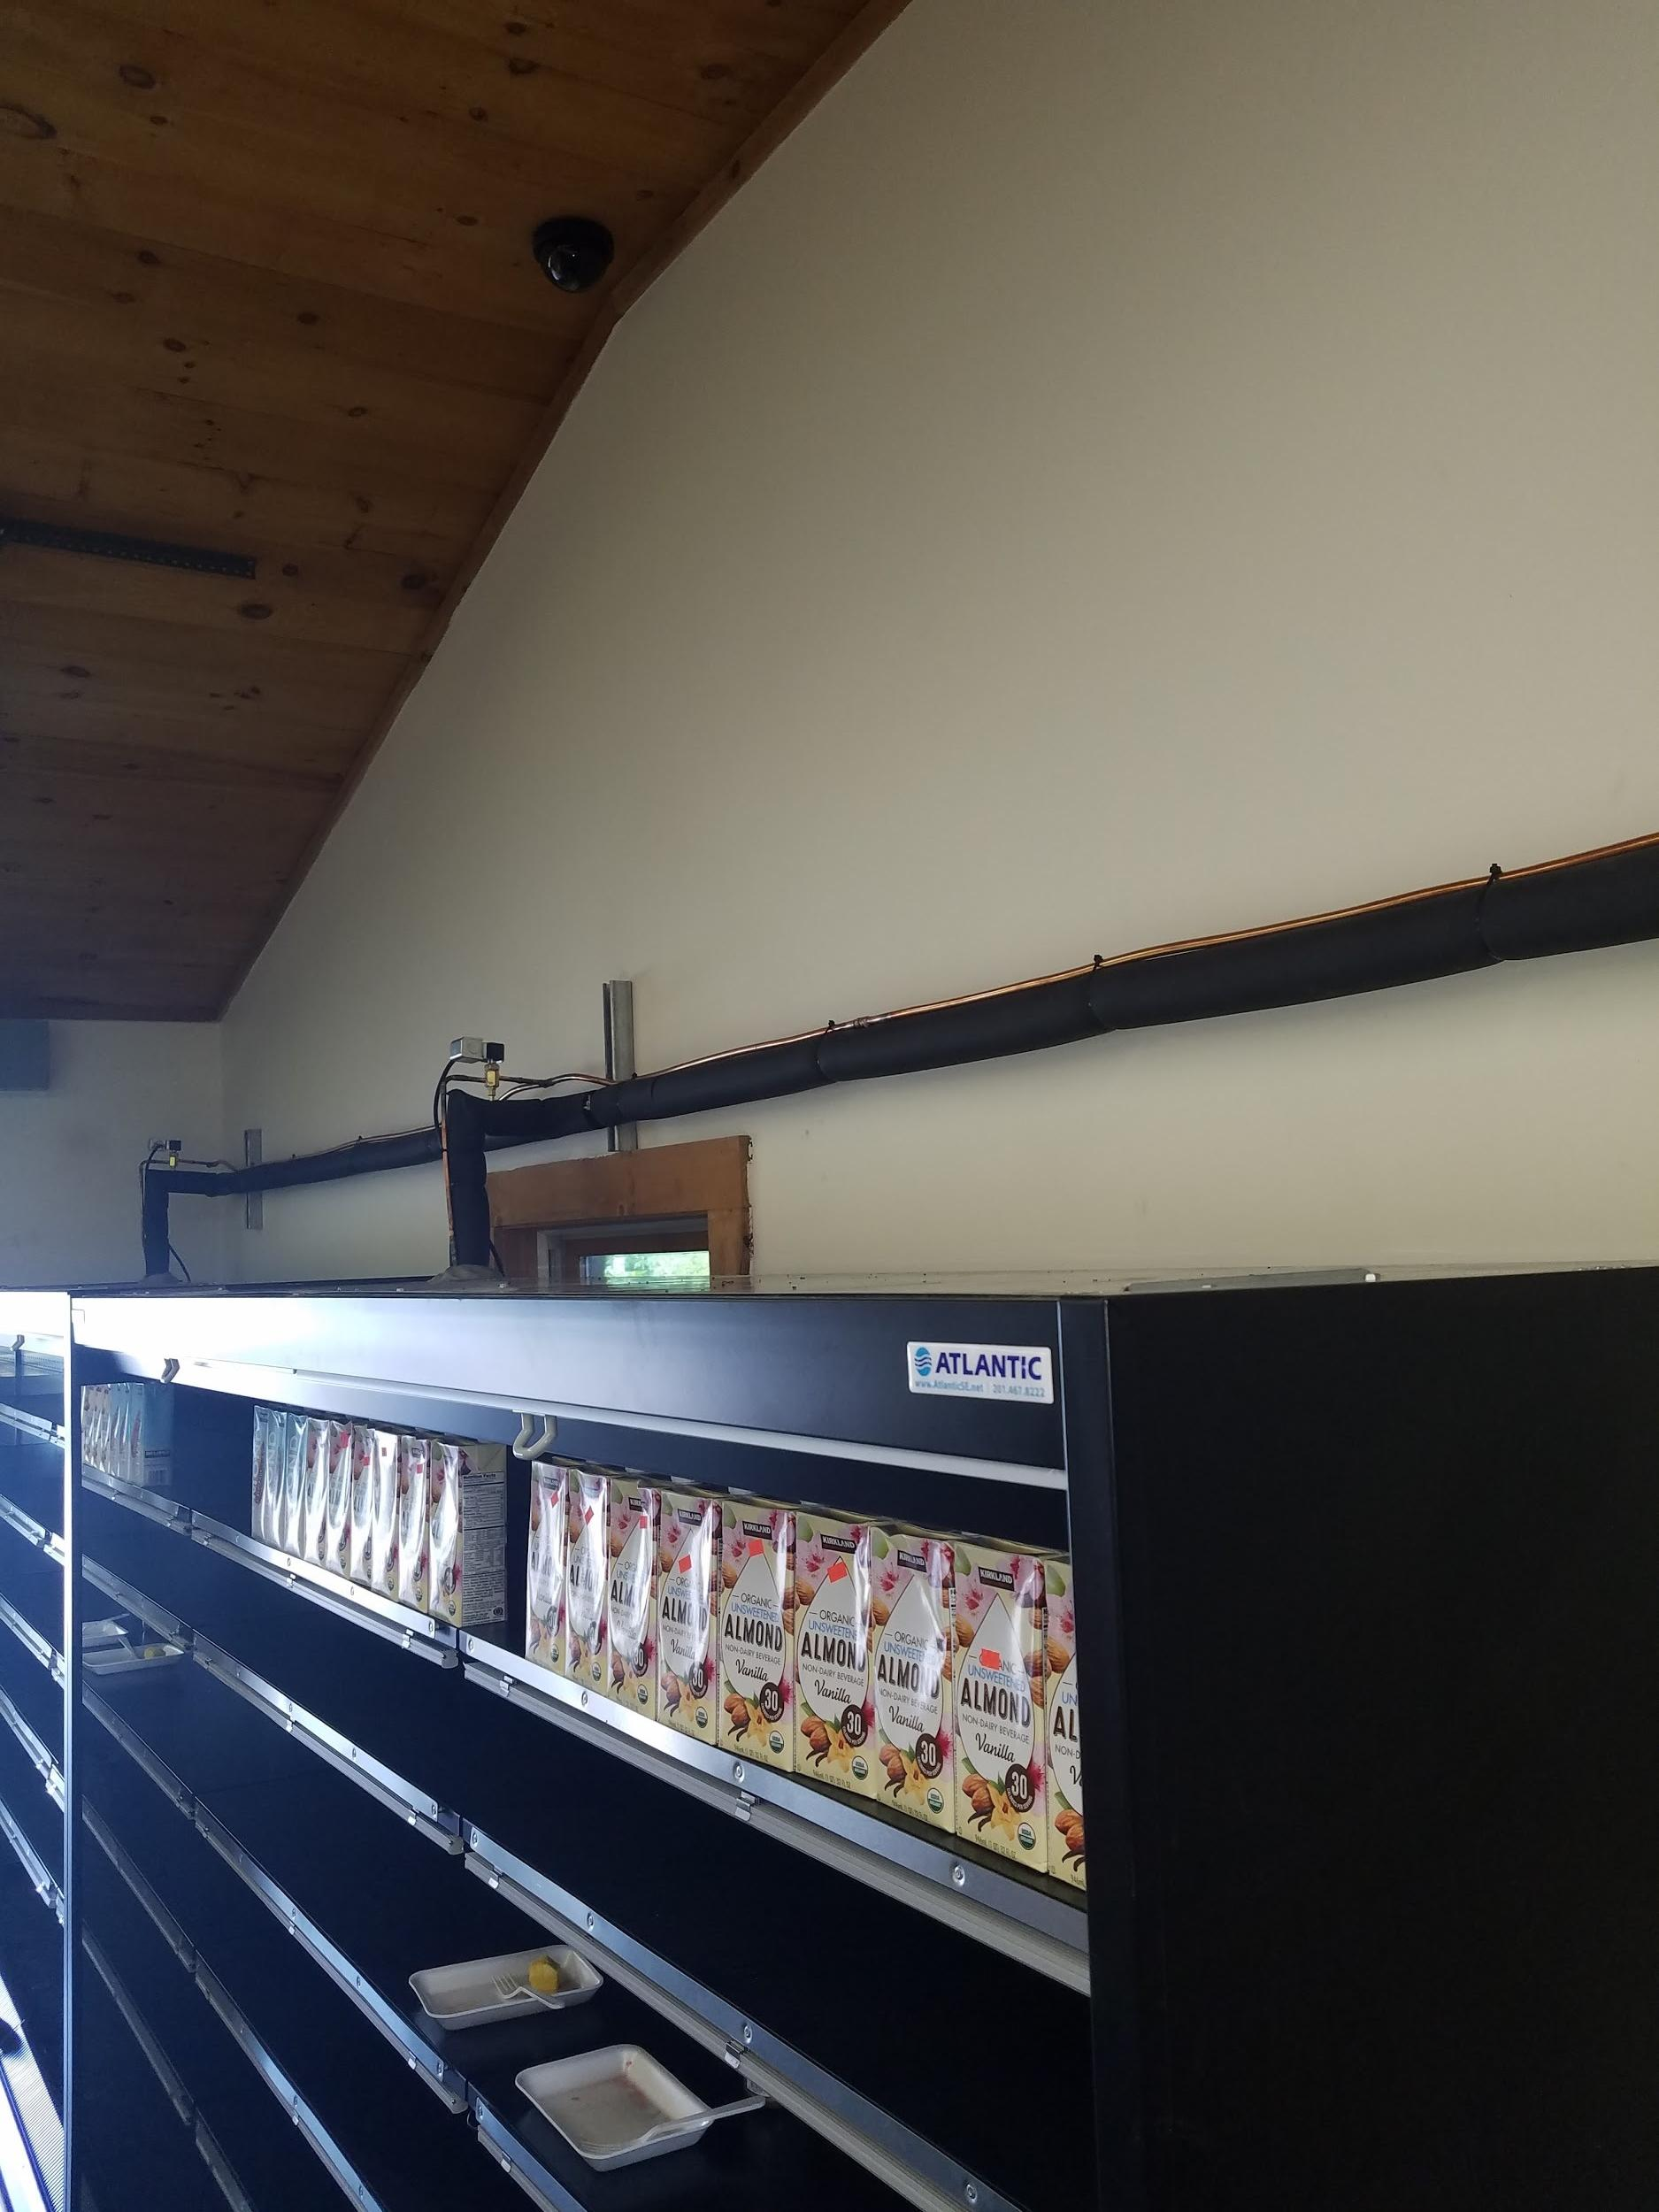 Example of properly installed condensate piping installed in MA grocery store.